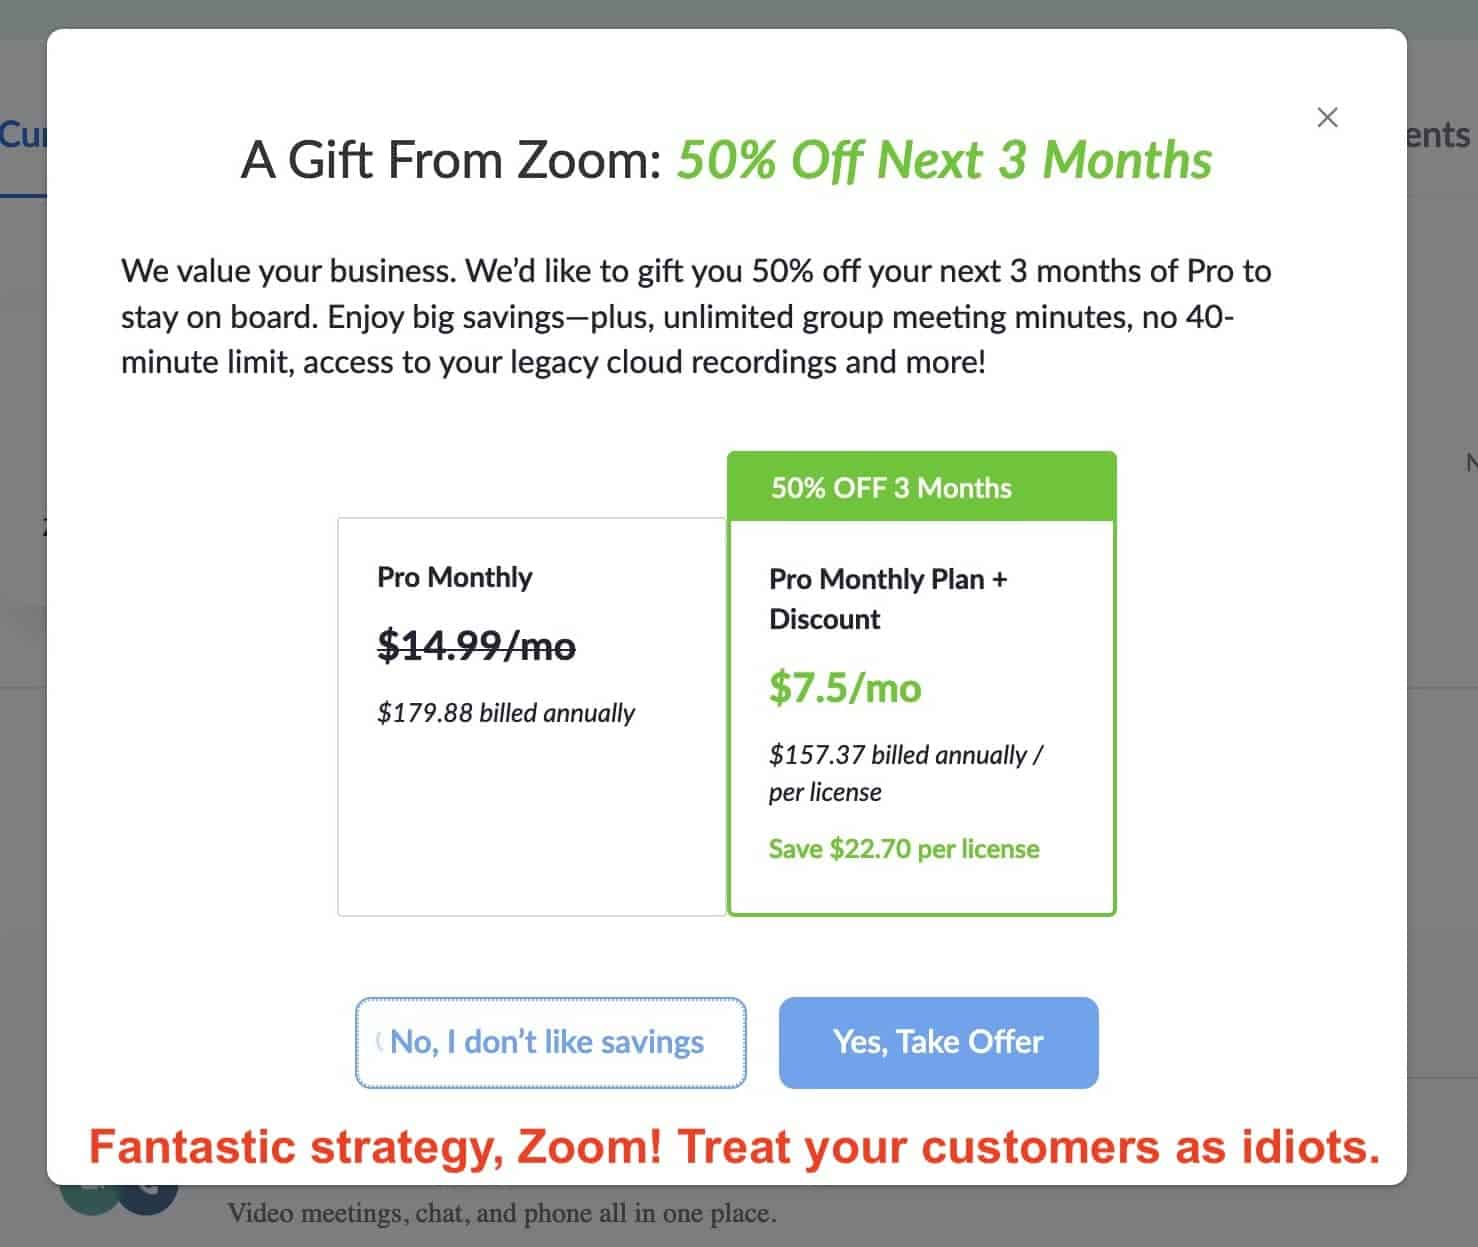 """Excerpt of a screen showing some marketing blurb, a table with the full and gift price for zoom and two buttons: 1) No, I don't like savings"""" 2) Yes, Take Offer."""